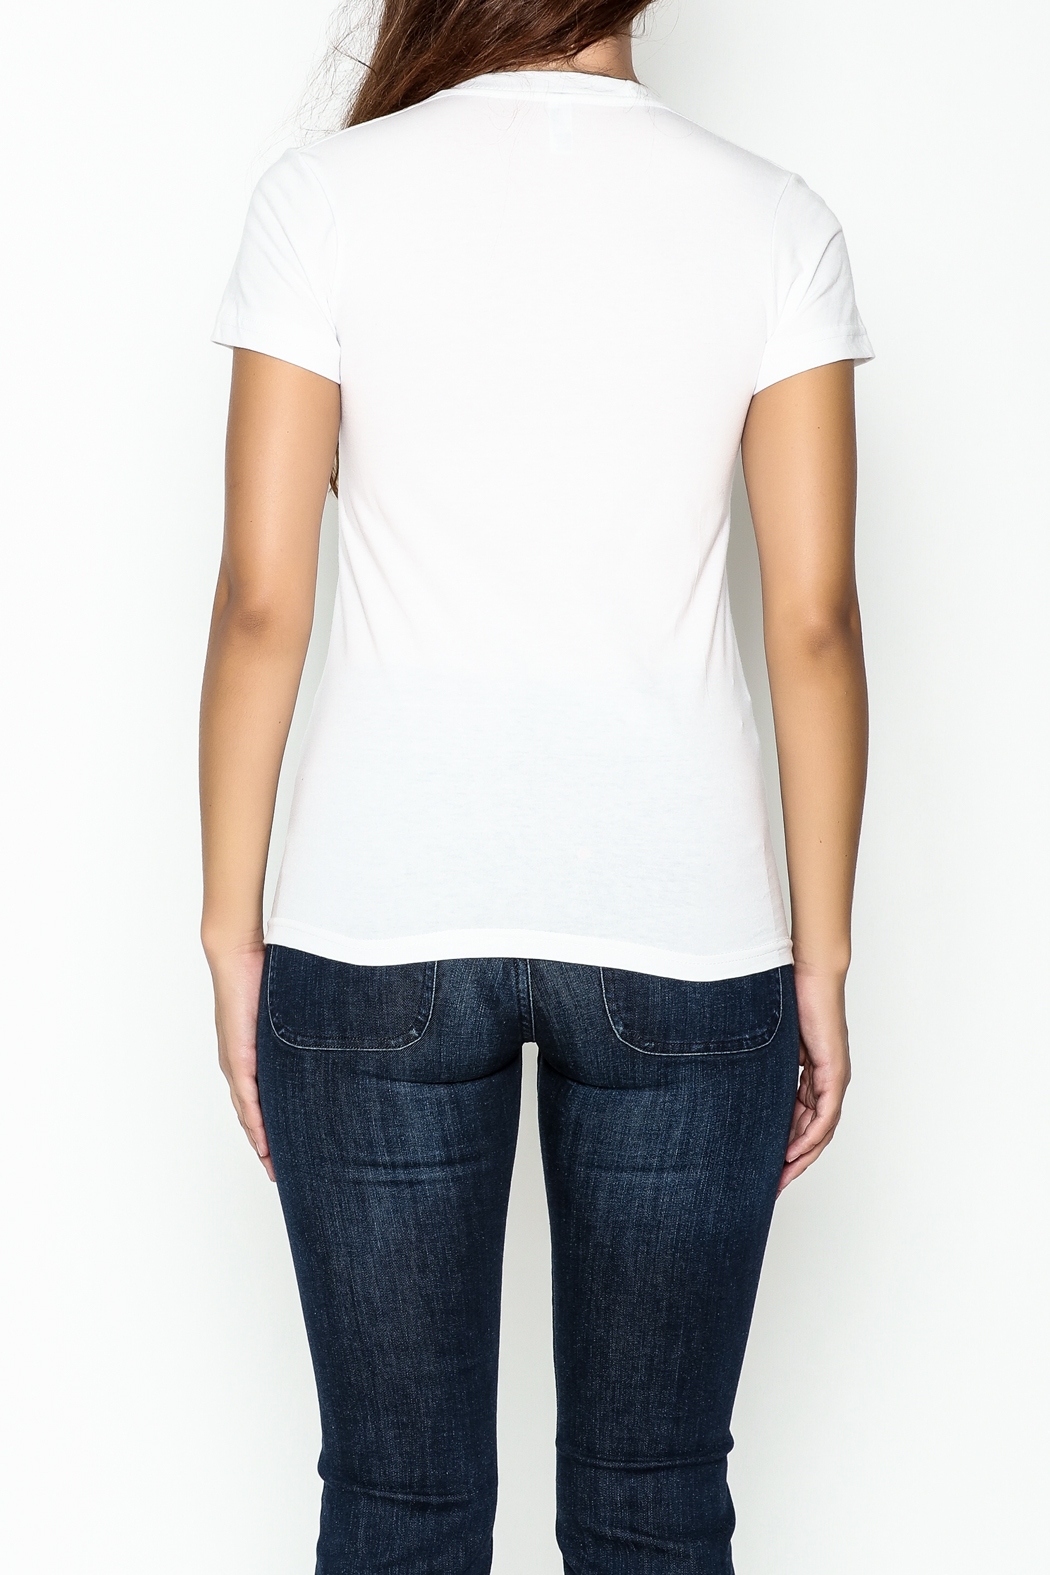 Elise Fitted White Tee - Back Cropped Image